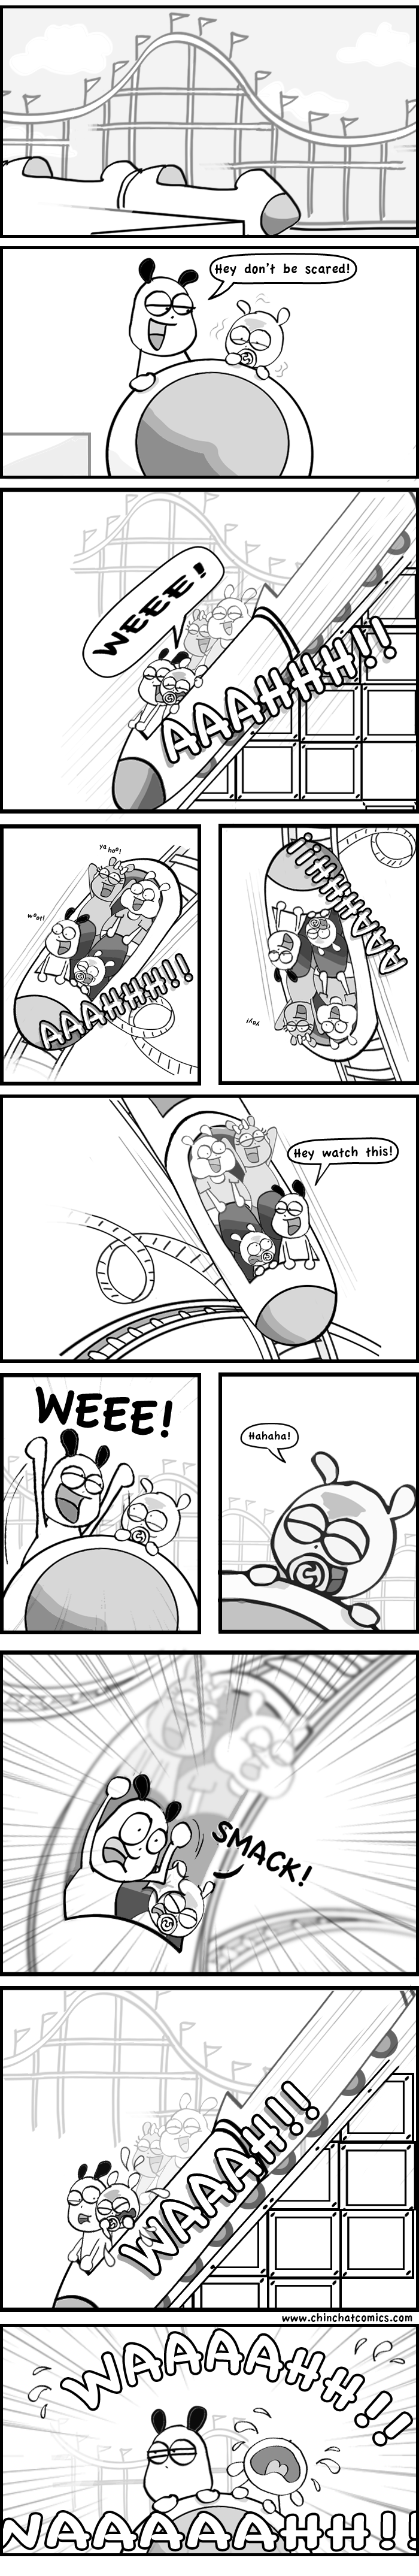 Chinchilla Roller Coaster Disaster! (ChinChatComics x FMyLife)